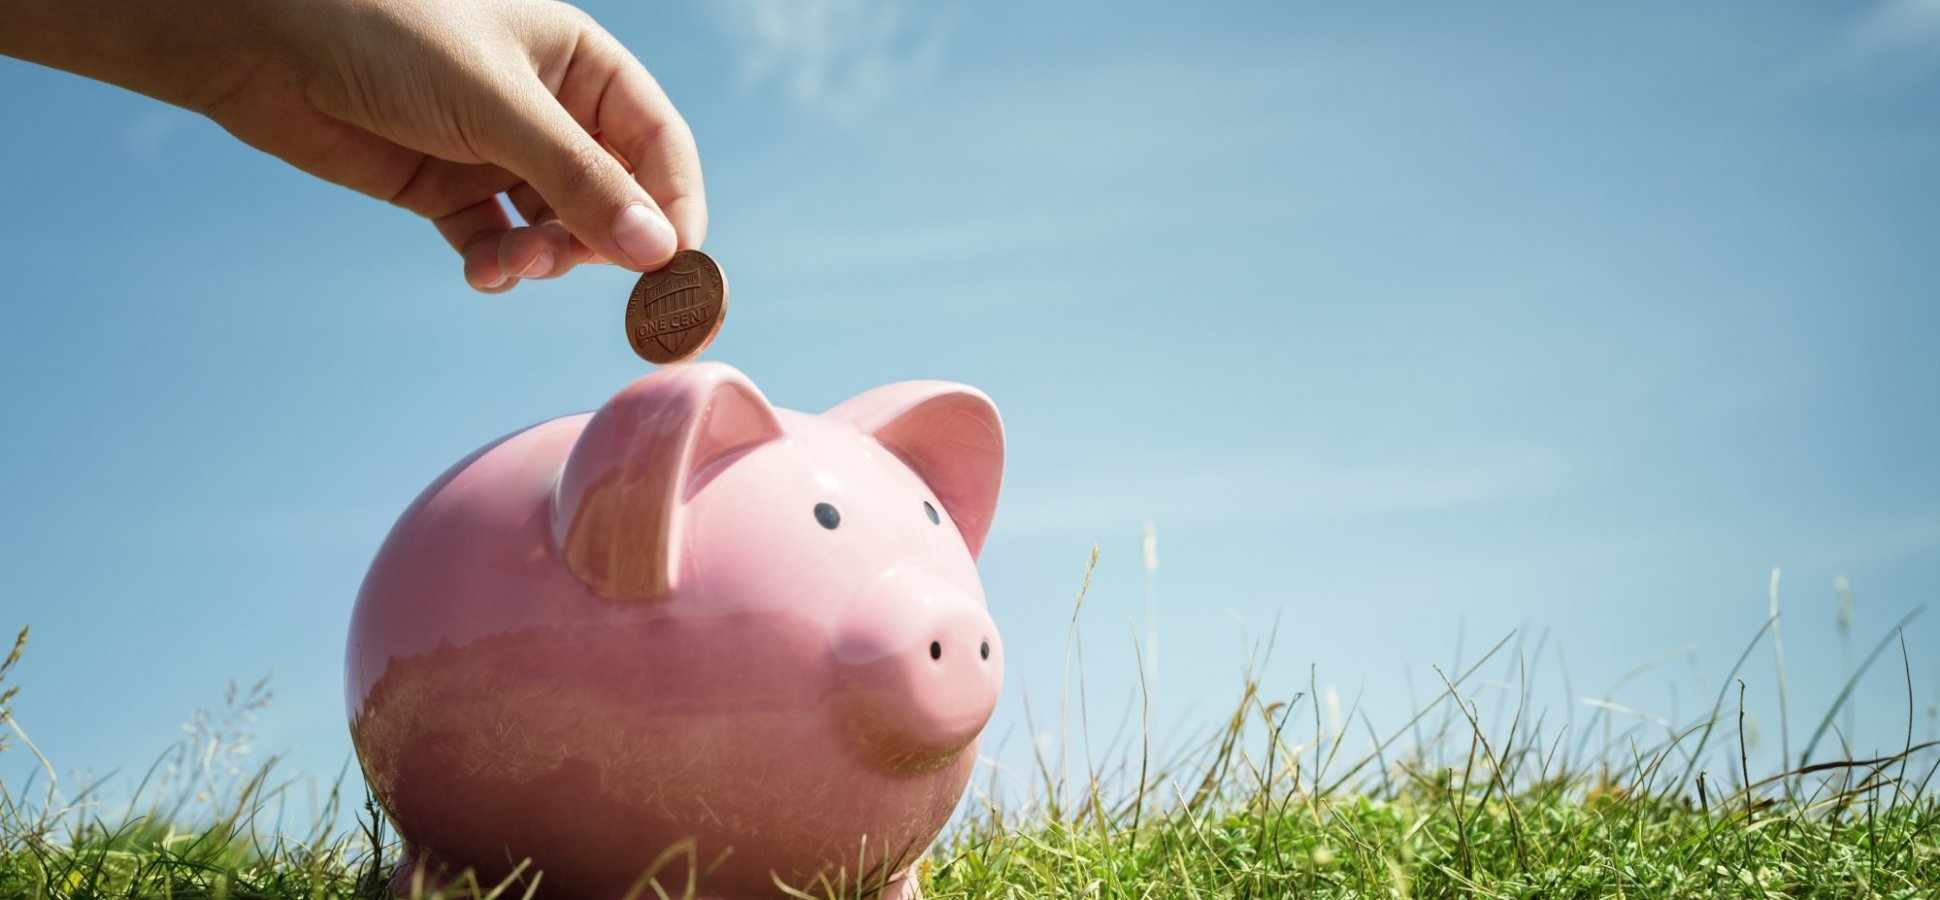 5 Simple Ways to Teach Your Kids Money Management